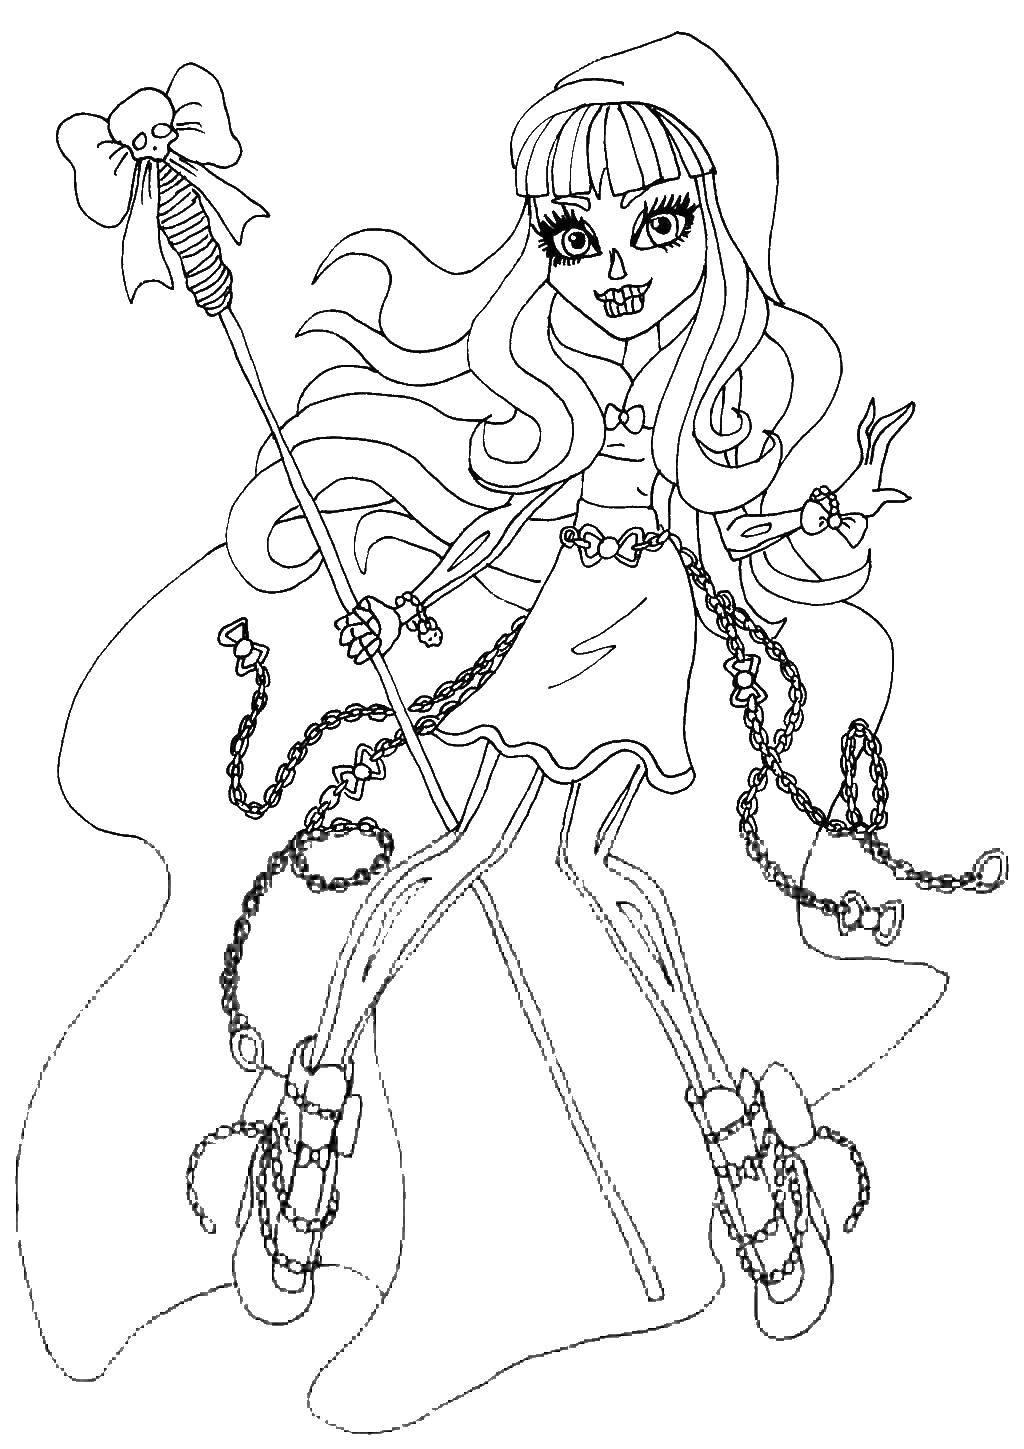 Monster High Skelita coloring page | Free Printable Coloring Pages | 1449x1024